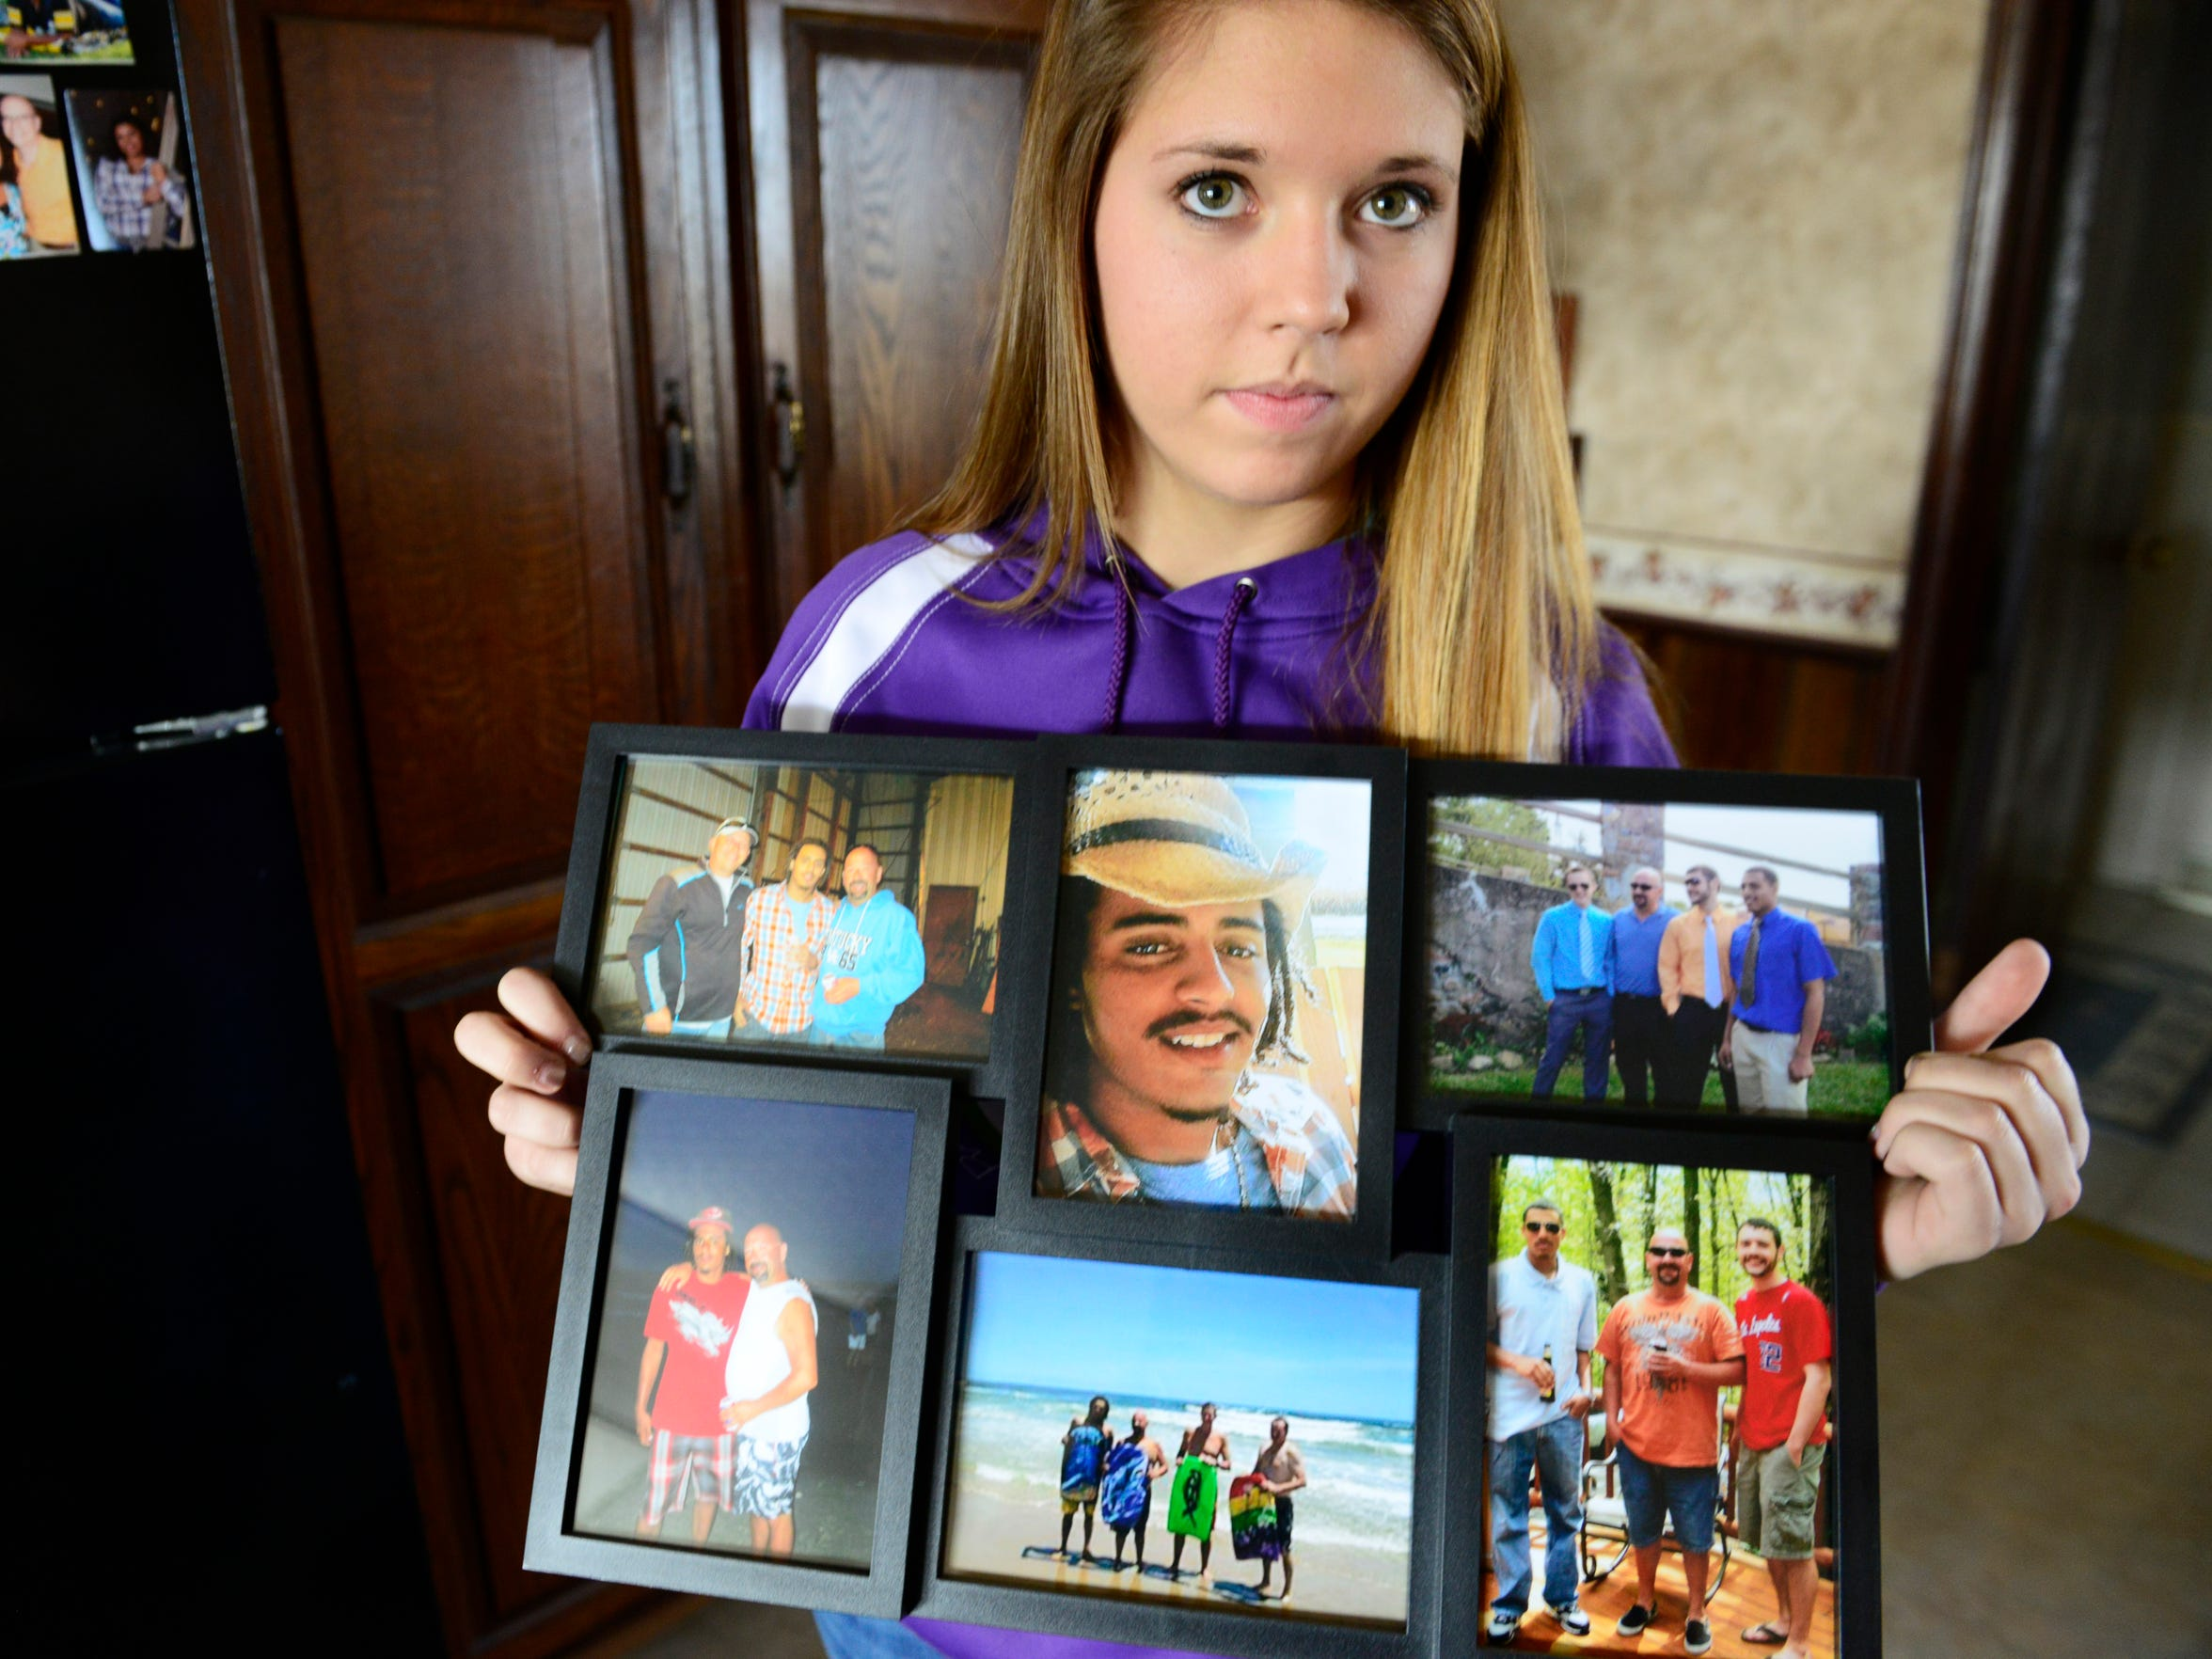 Bralyn Gregg holds family photos featuring her brother.